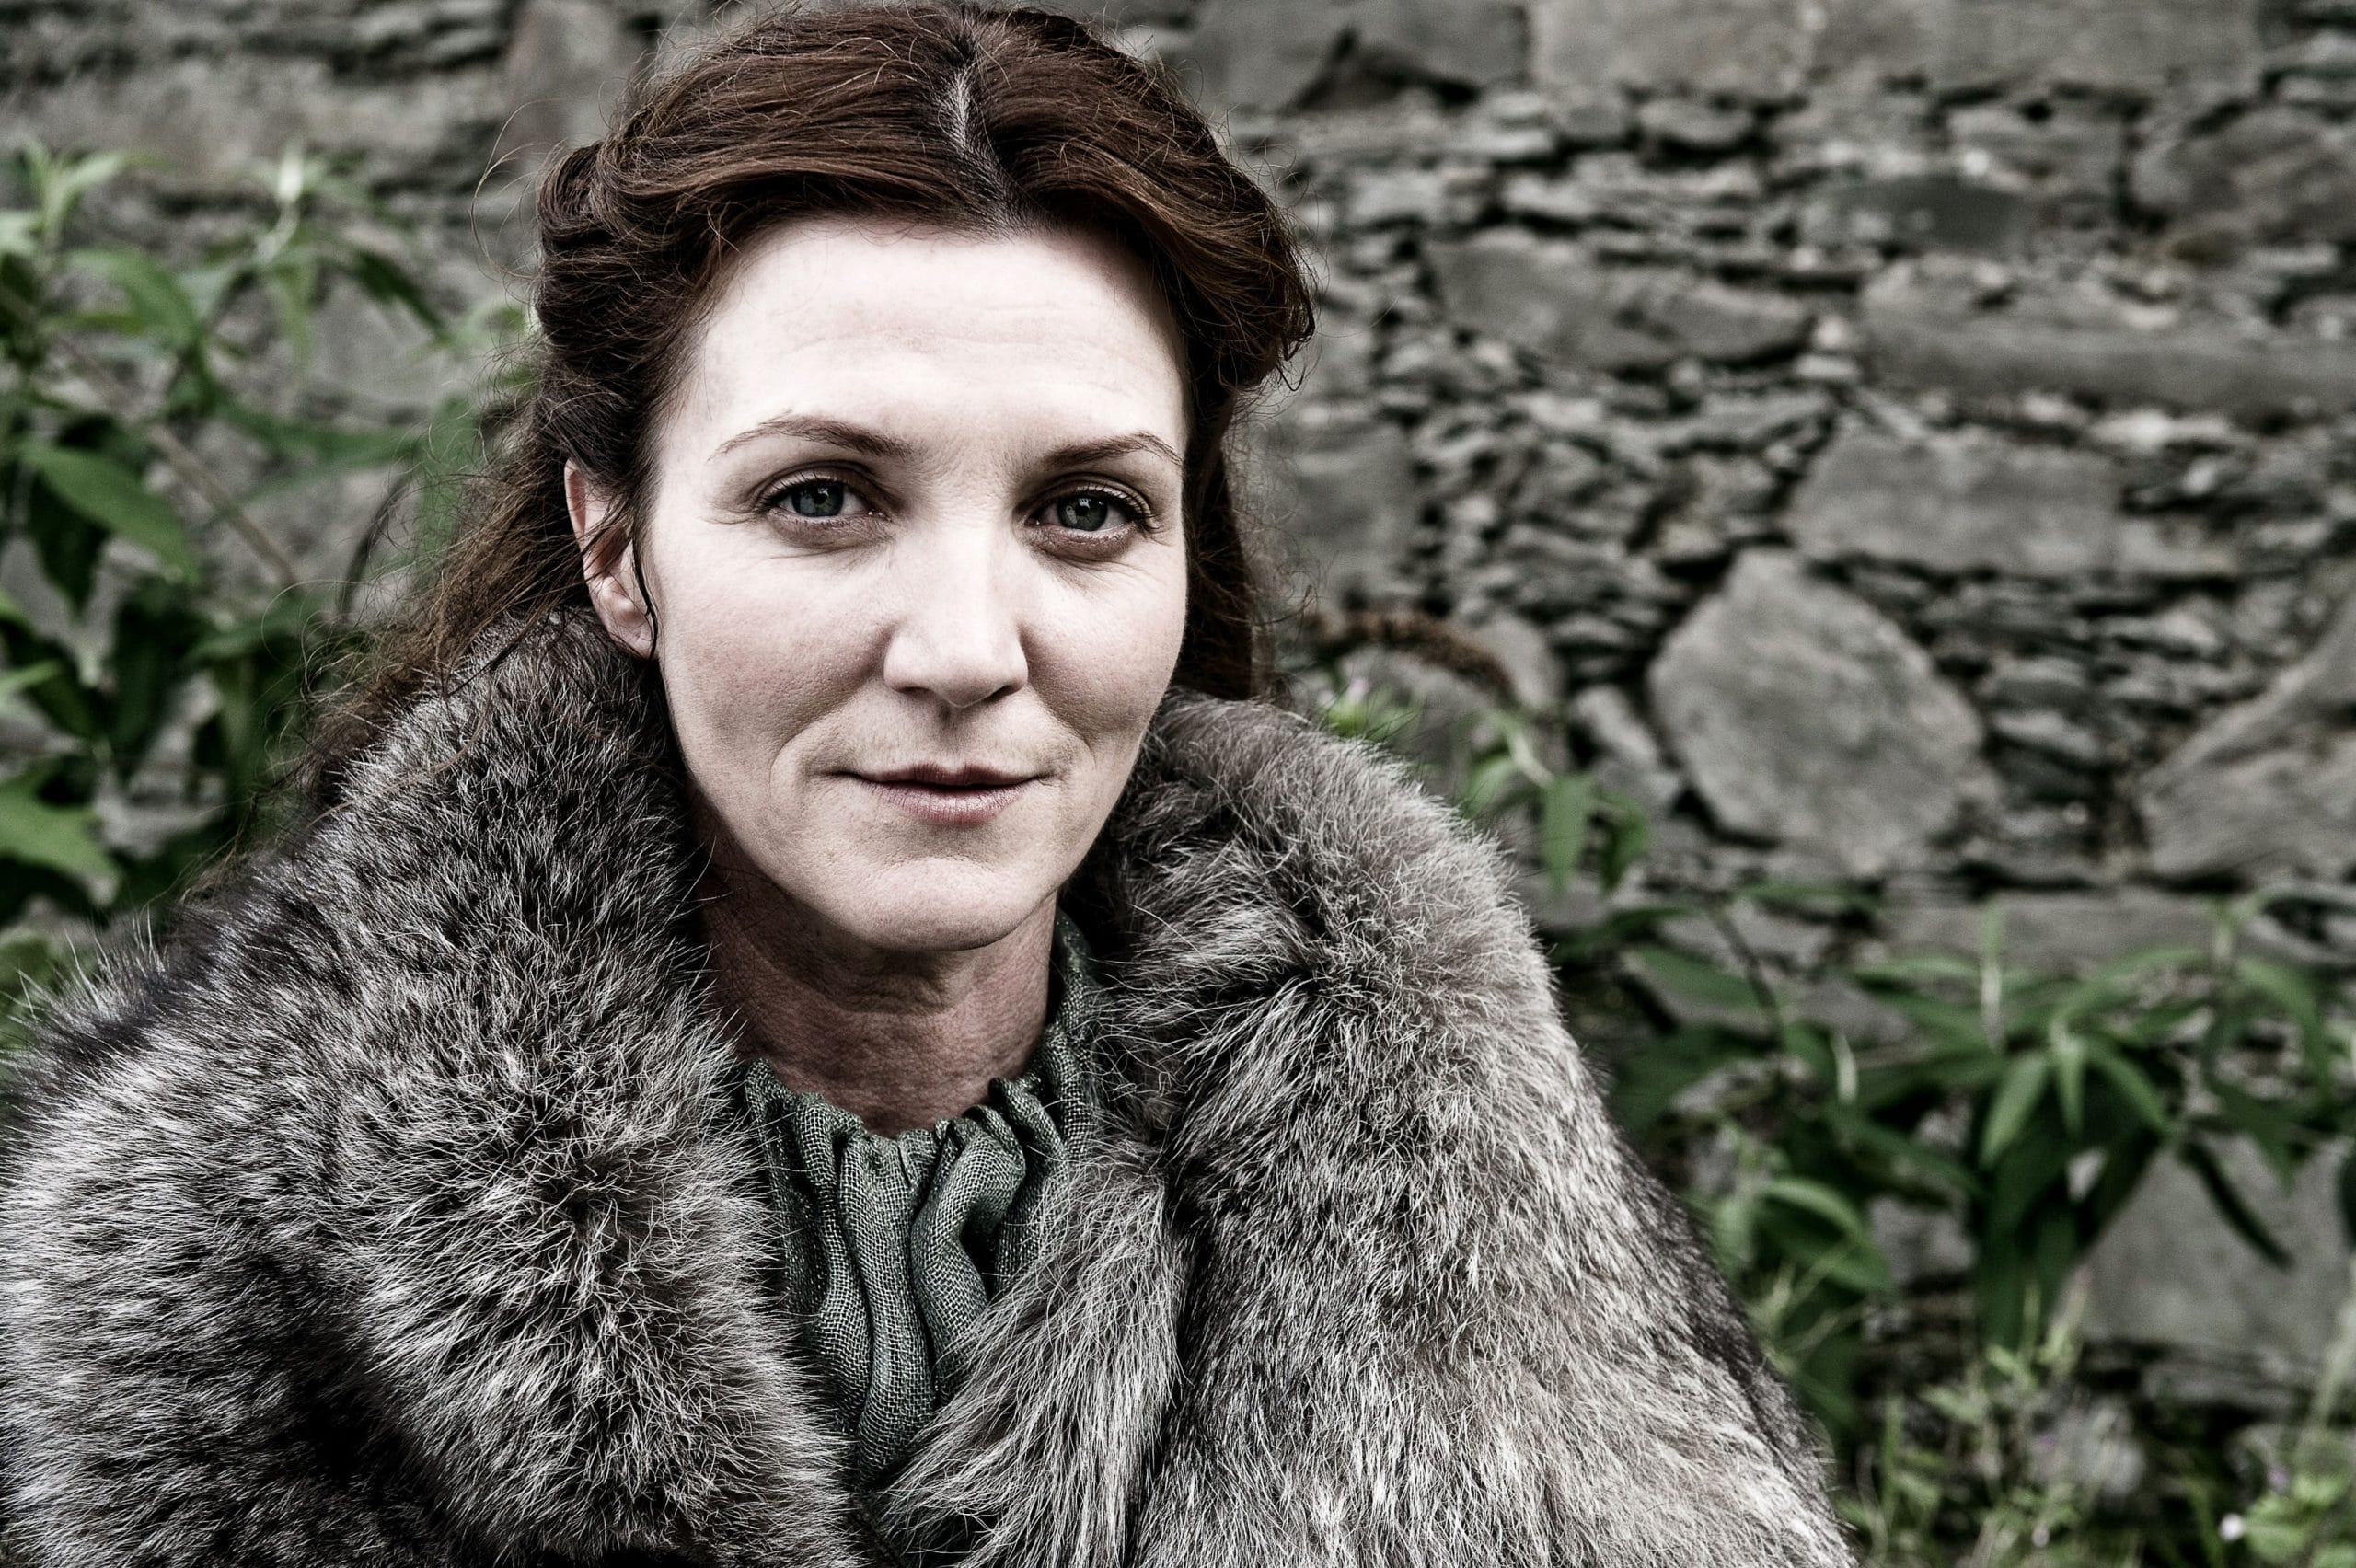 Game of Thrones: What Happened To Lady Stoneheart?